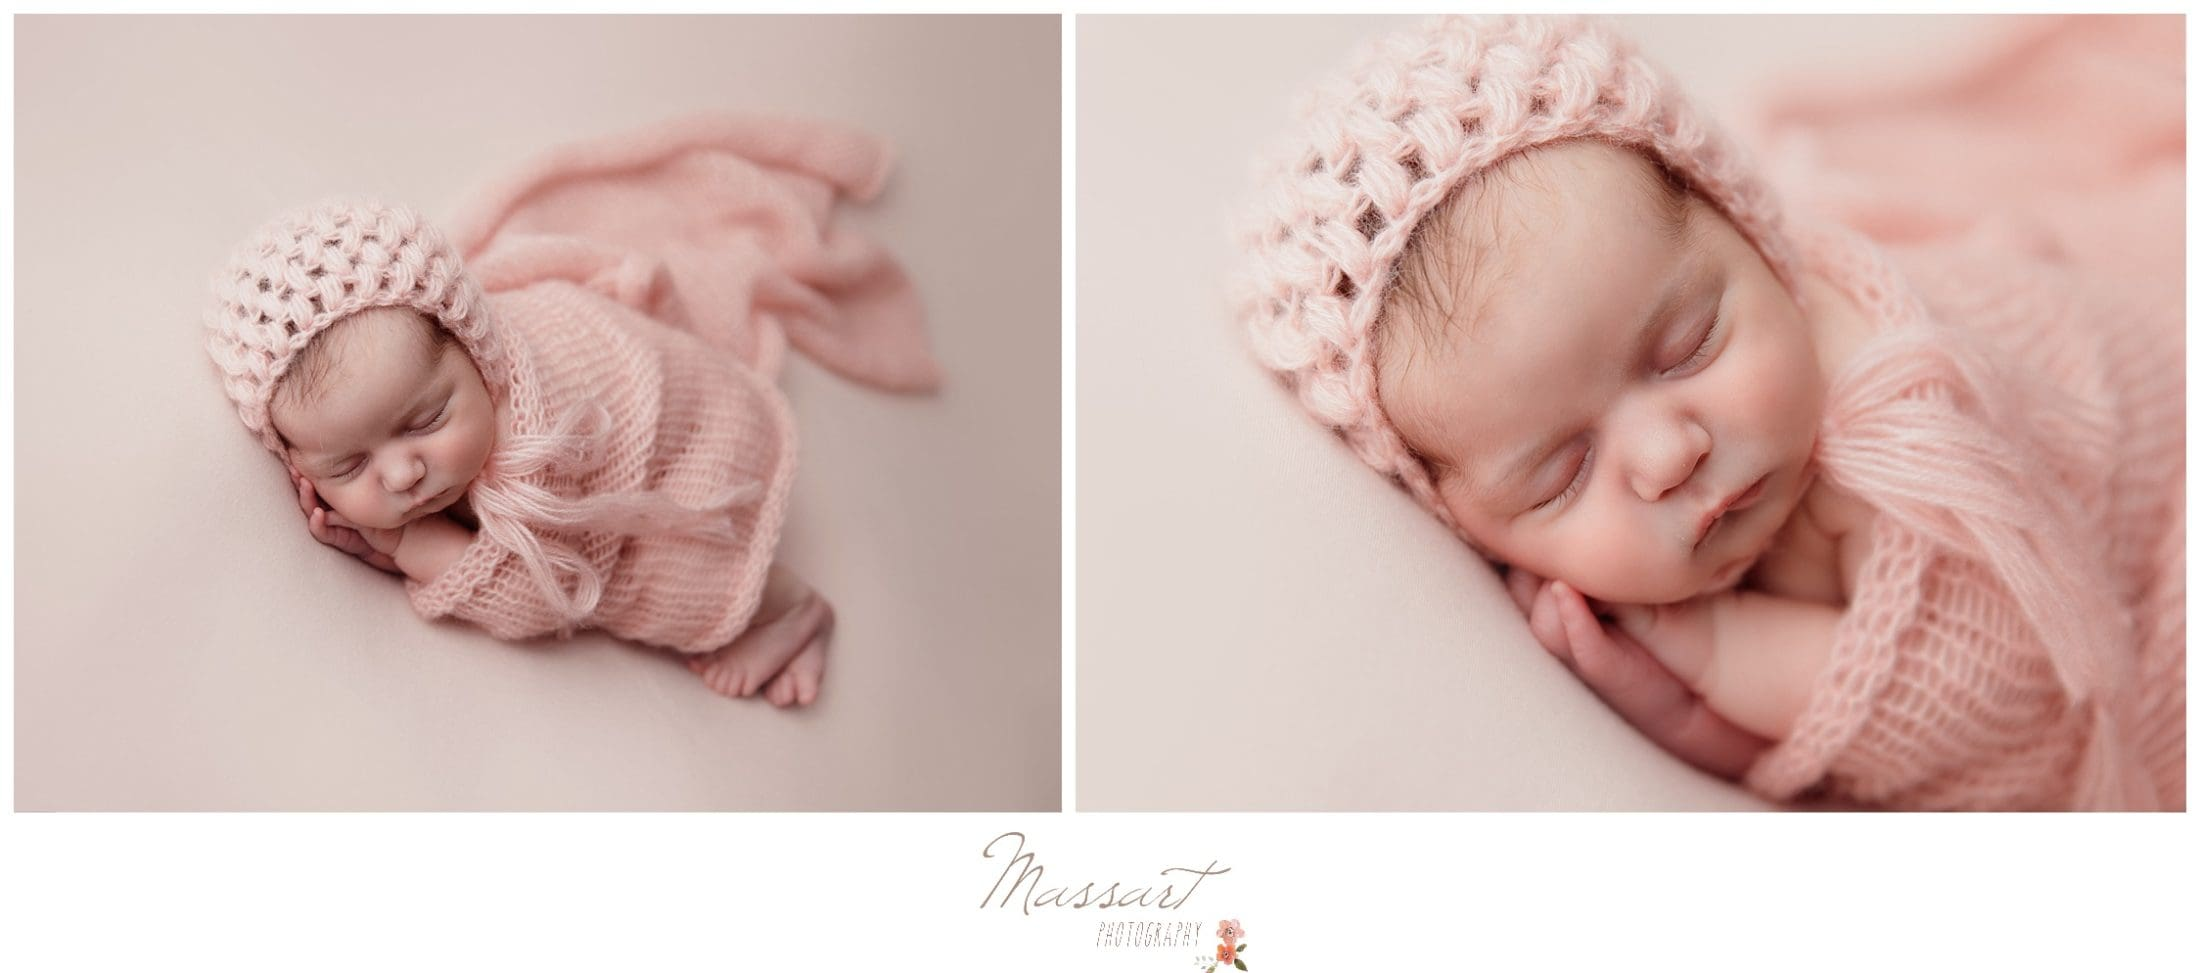 Baby girl wrapped in pink blanket and bonnet photographed by Massart Photography Rhode Island